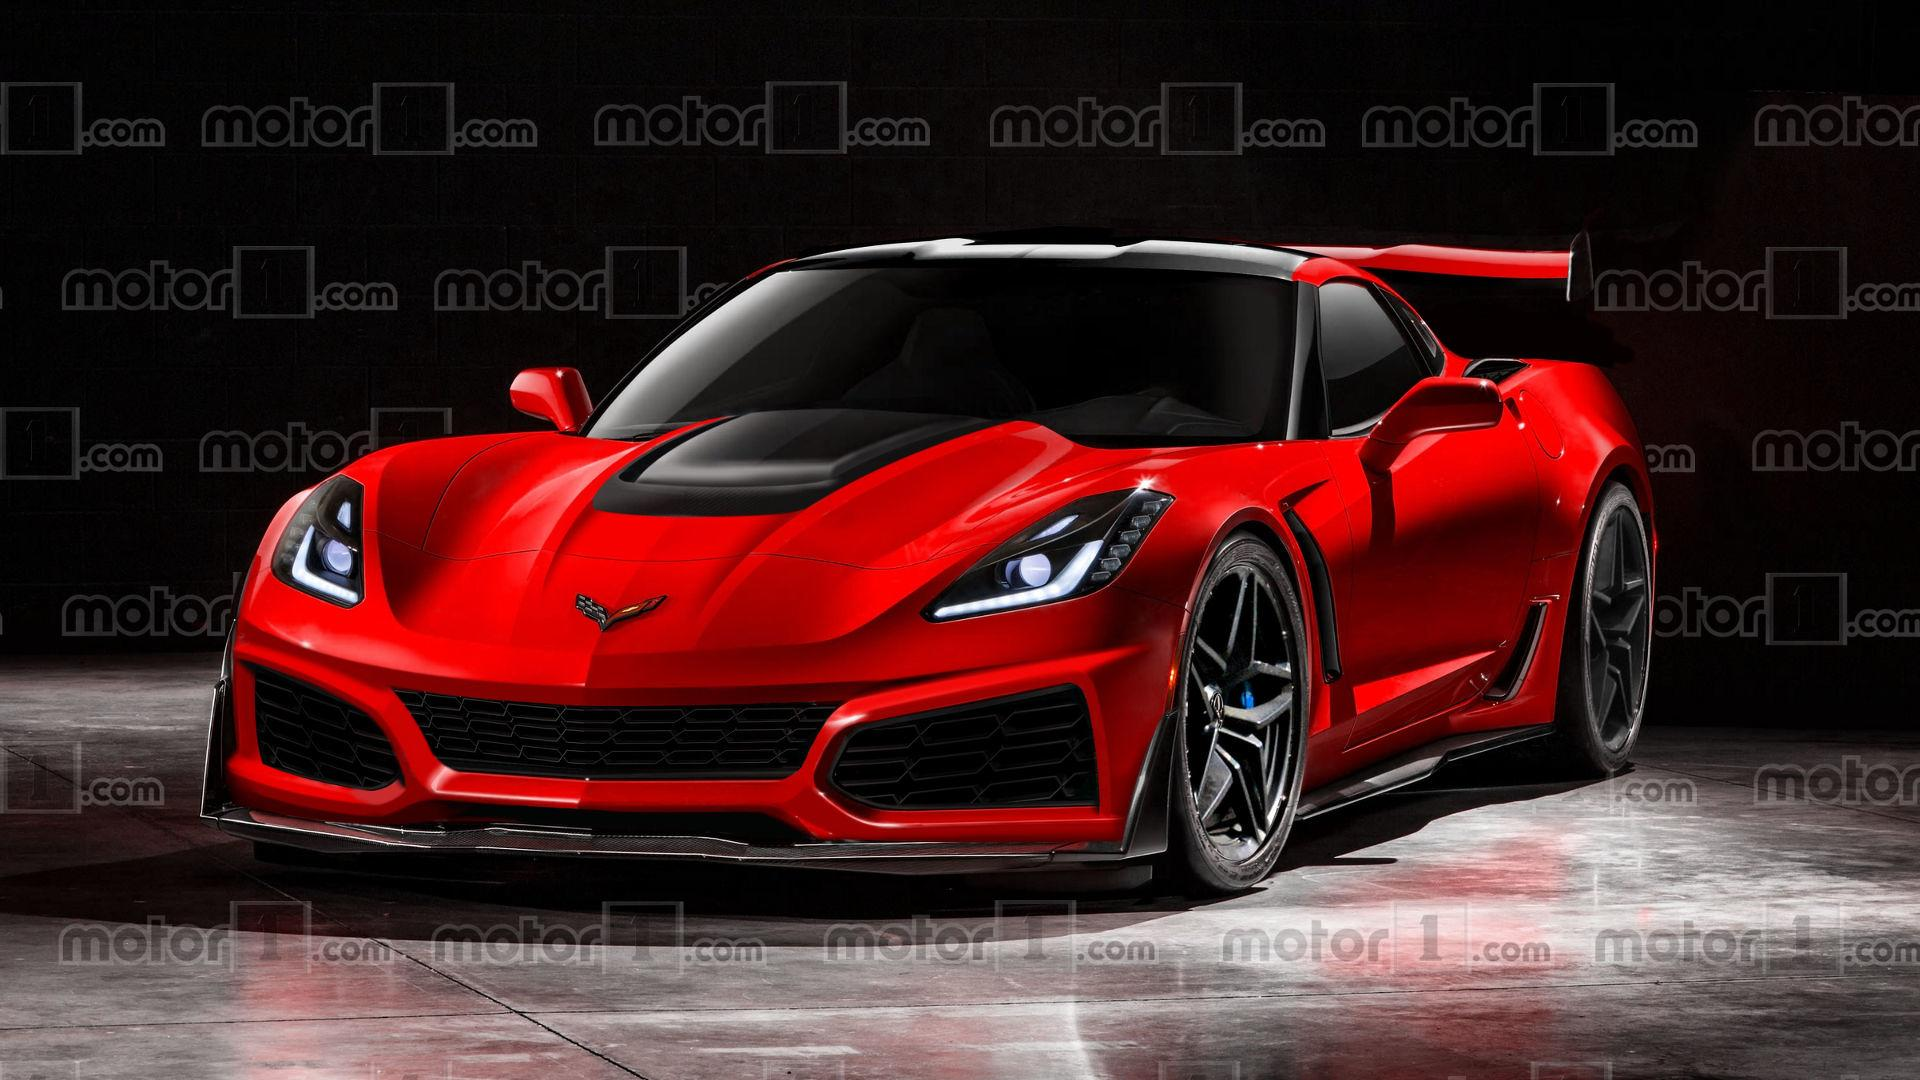 2018 Chevy Corvette Zr1 Could And Should Look Like This